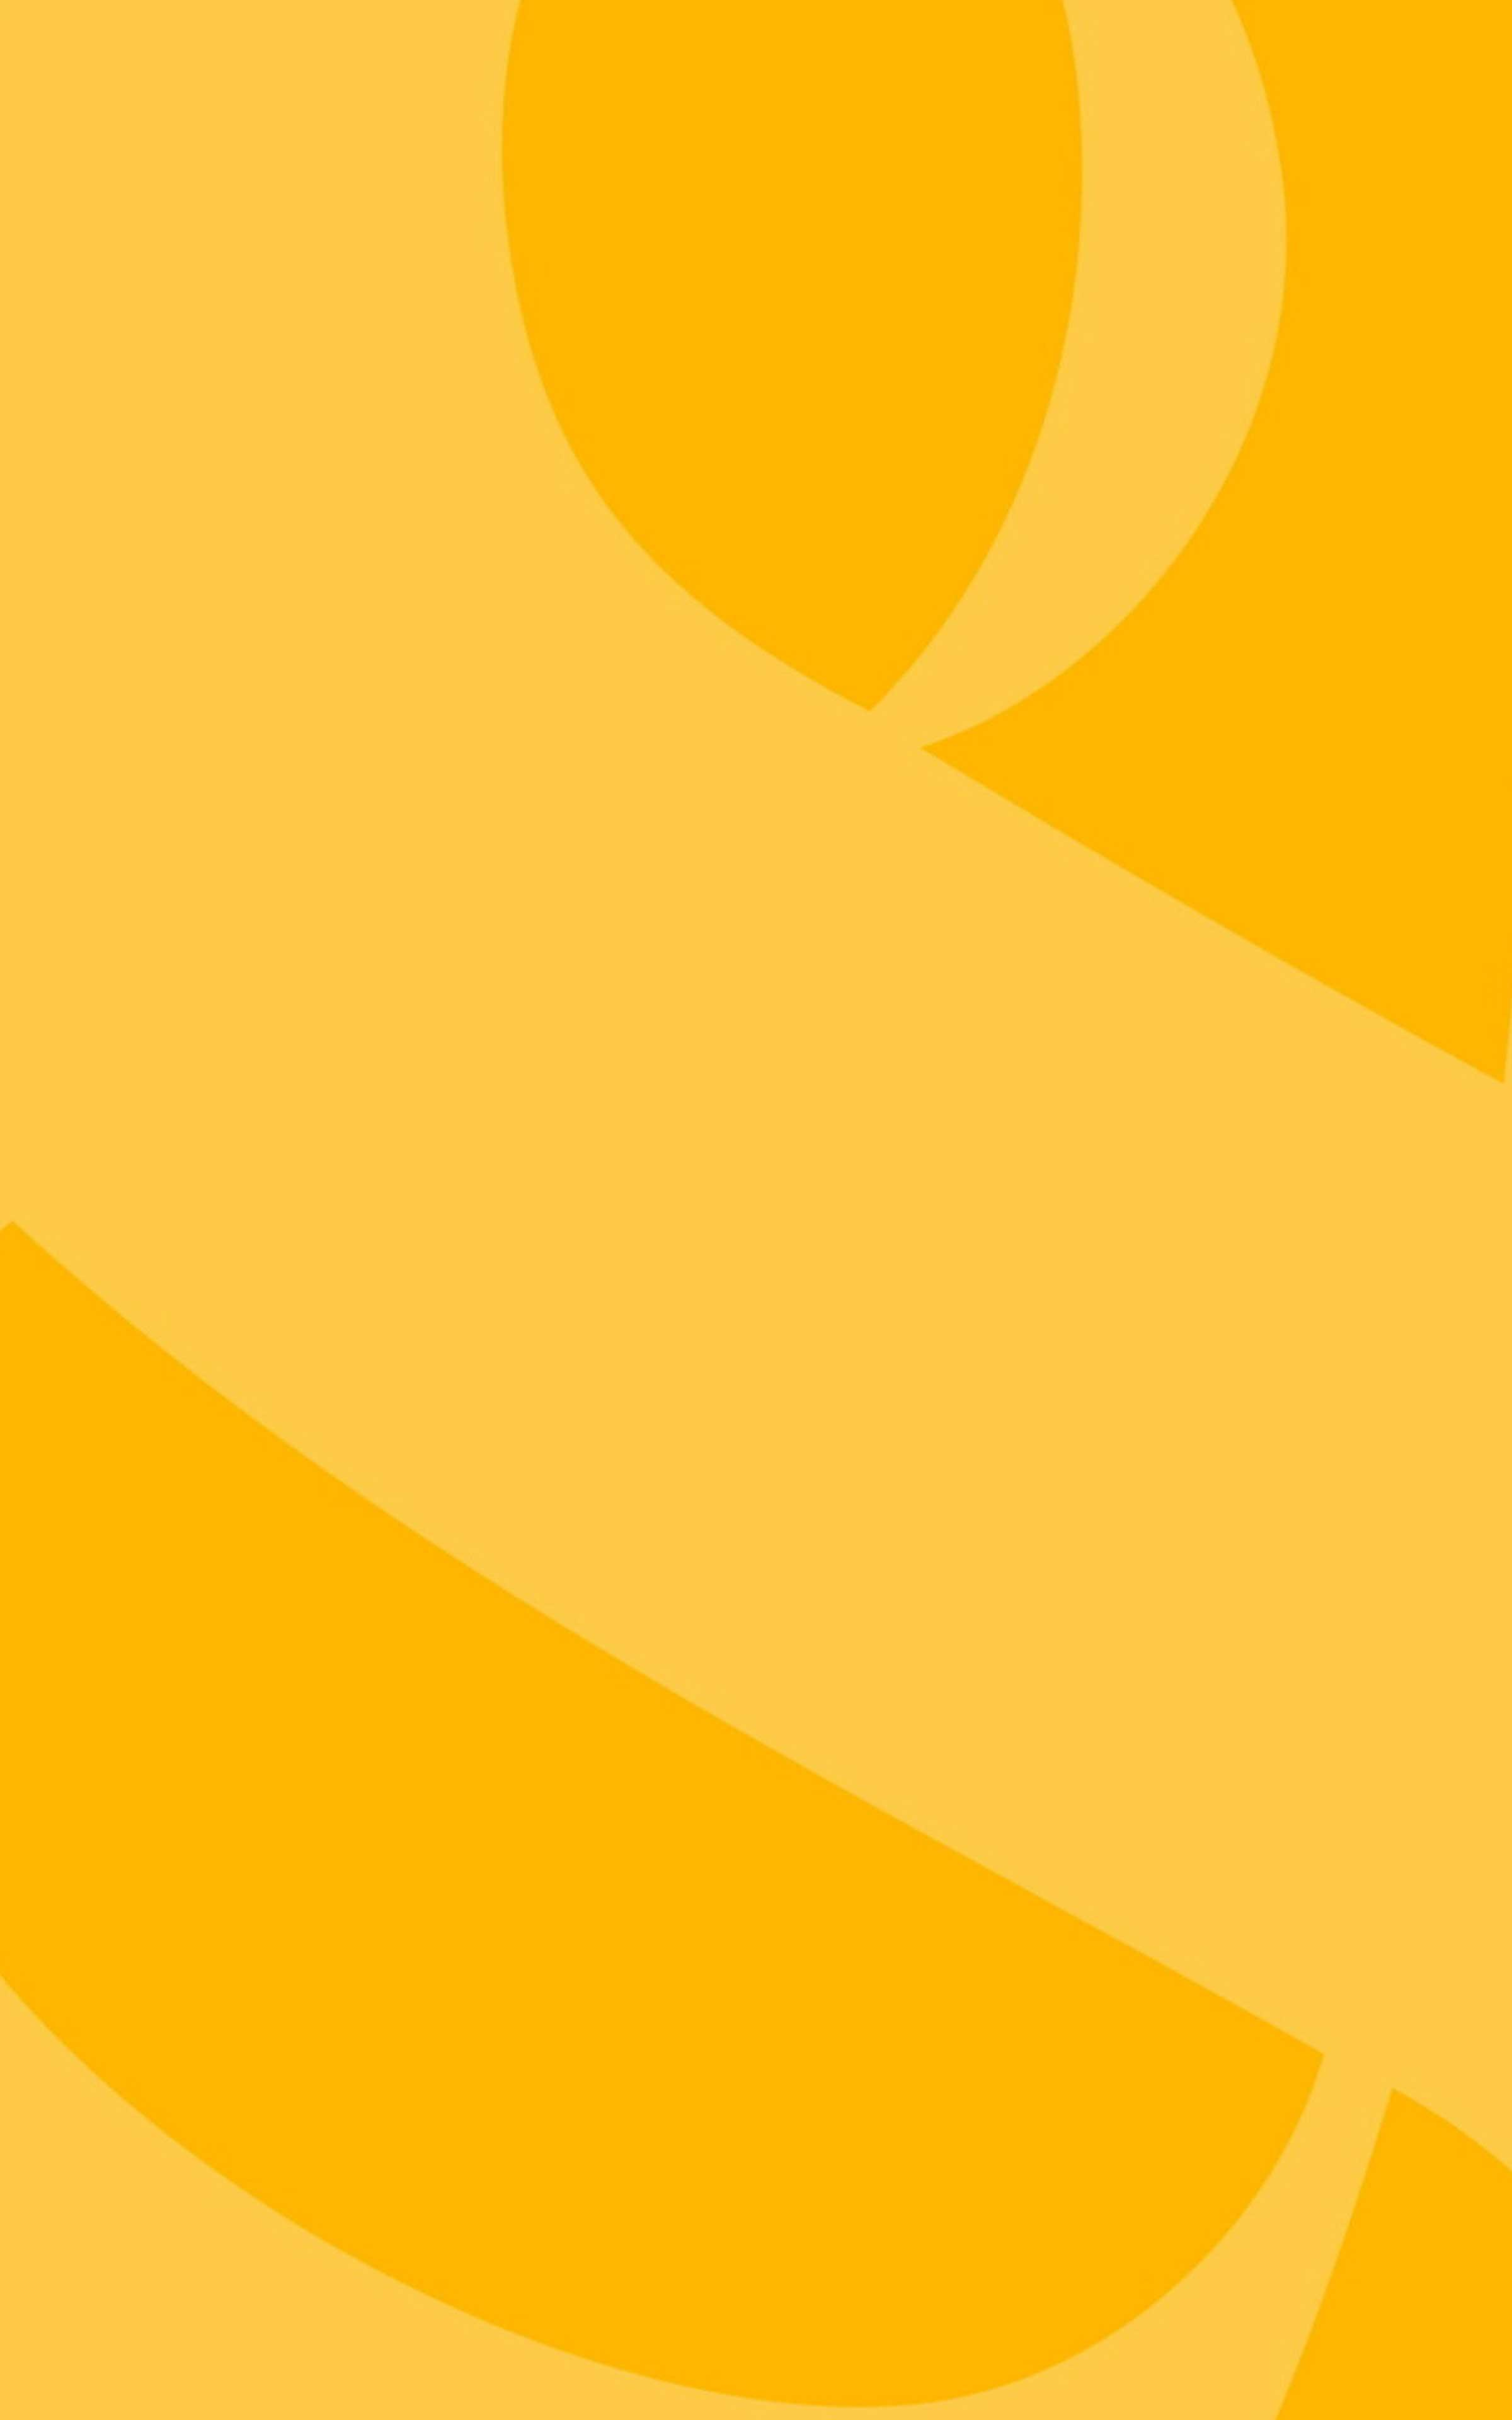 Yellow Wallpaper PDF - Best Cool Yellow Wallpapers for ...